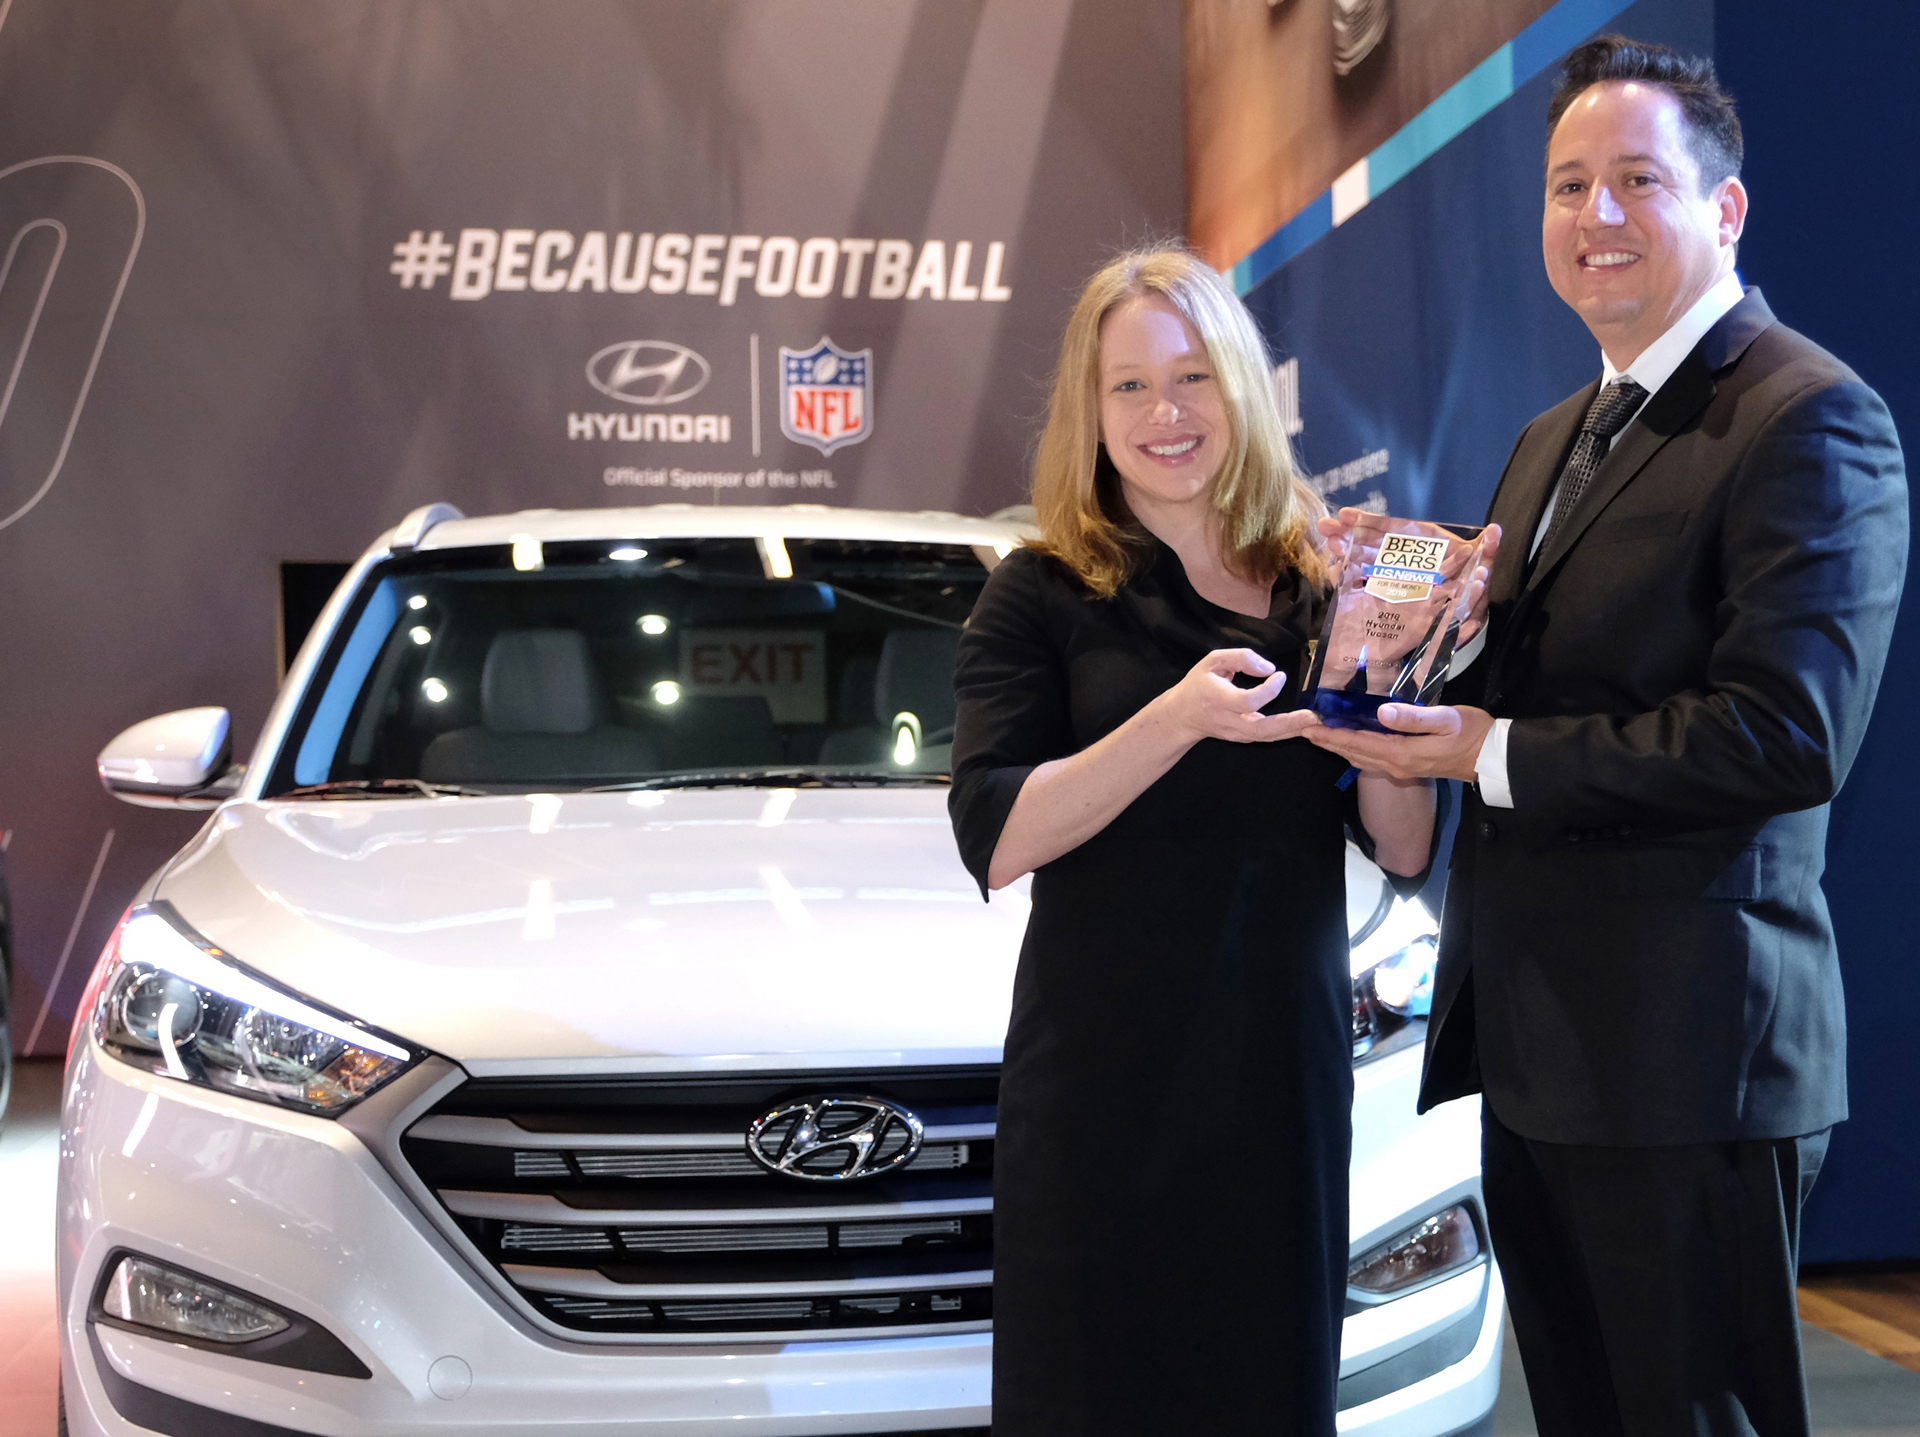 hyundai tucson named best compact suv for the money by u s news world report carrrs auto portal. Black Bedroom Furniture Sets. Home Design Ideas